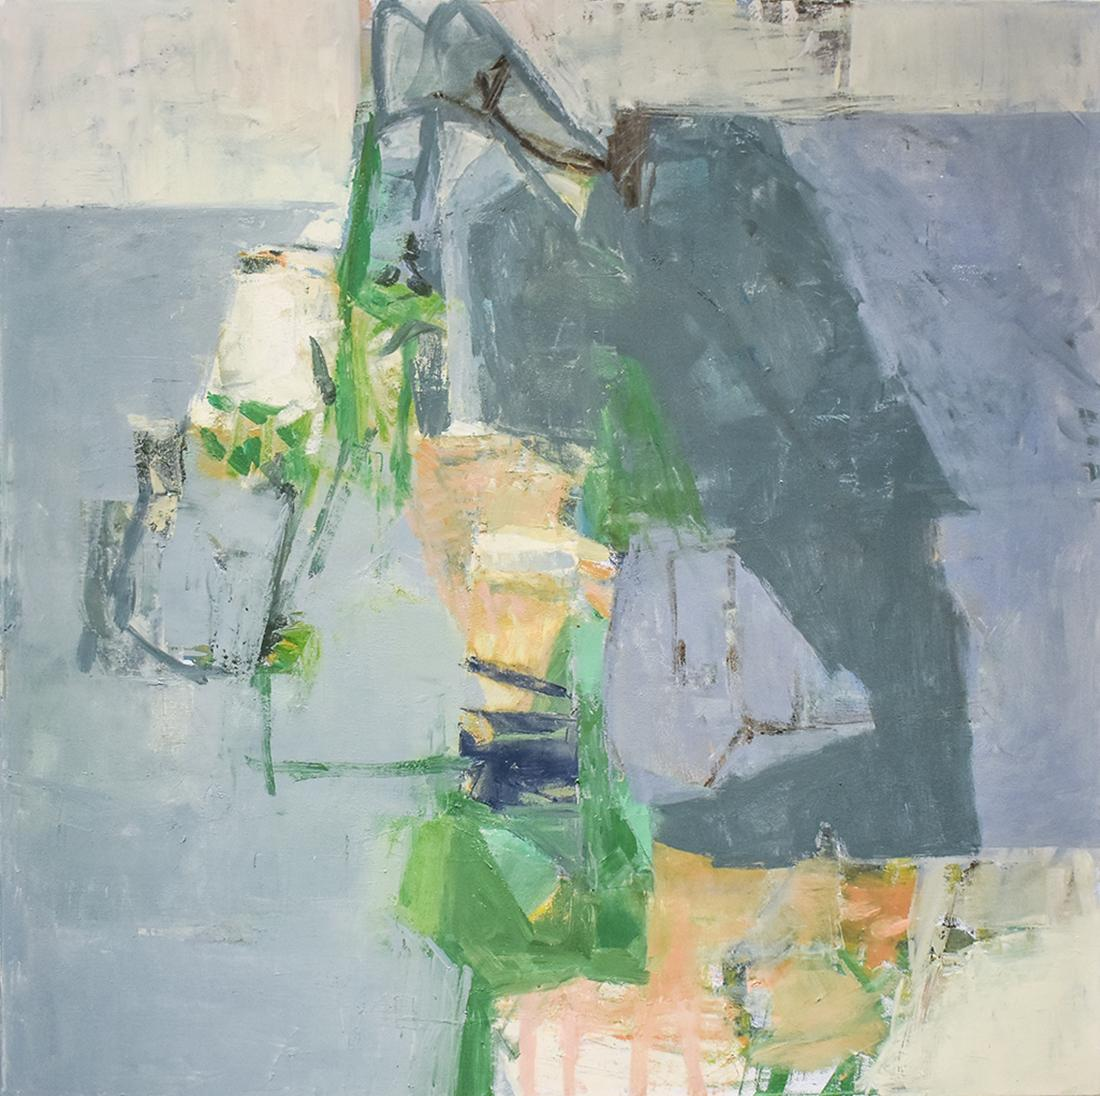 Arrow (Abstract Expressionist Oil Painting in Light Blue, Paynes Grey & Green)